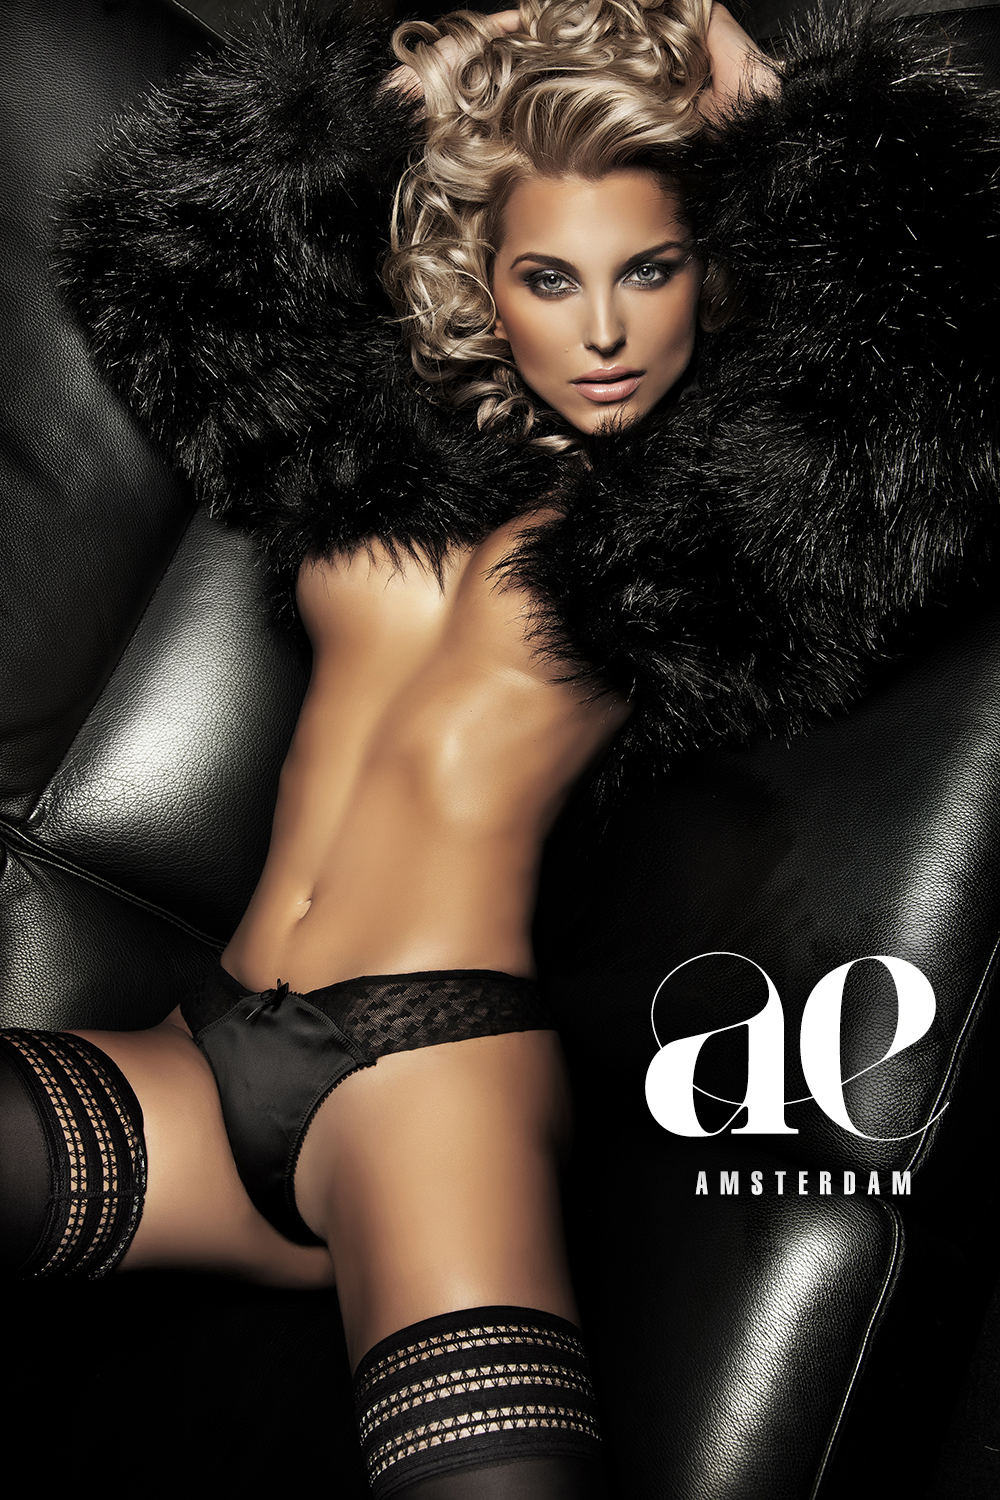 Hot Escort Babes in Amsterdam